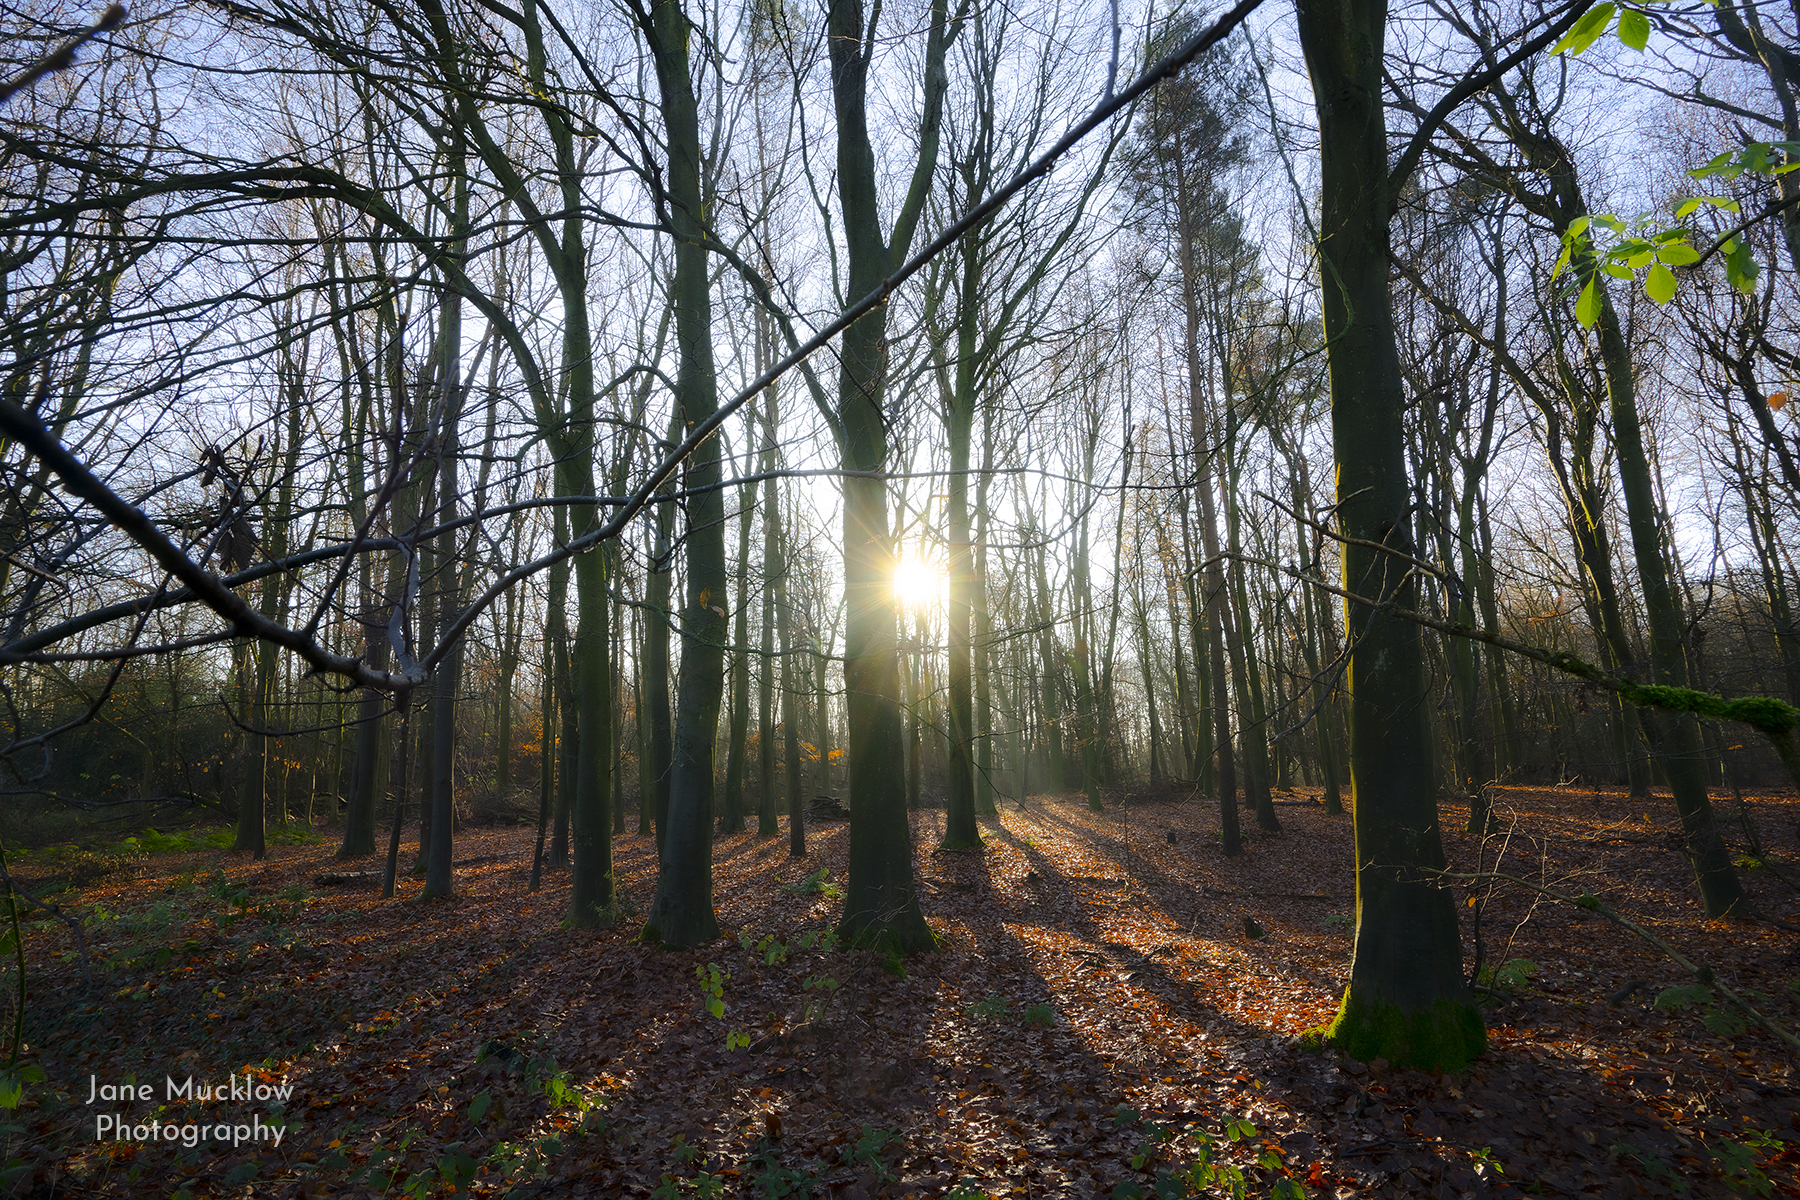 Photo by Jane Mucklow of the sun shining through woods near Ide Hill, Kent